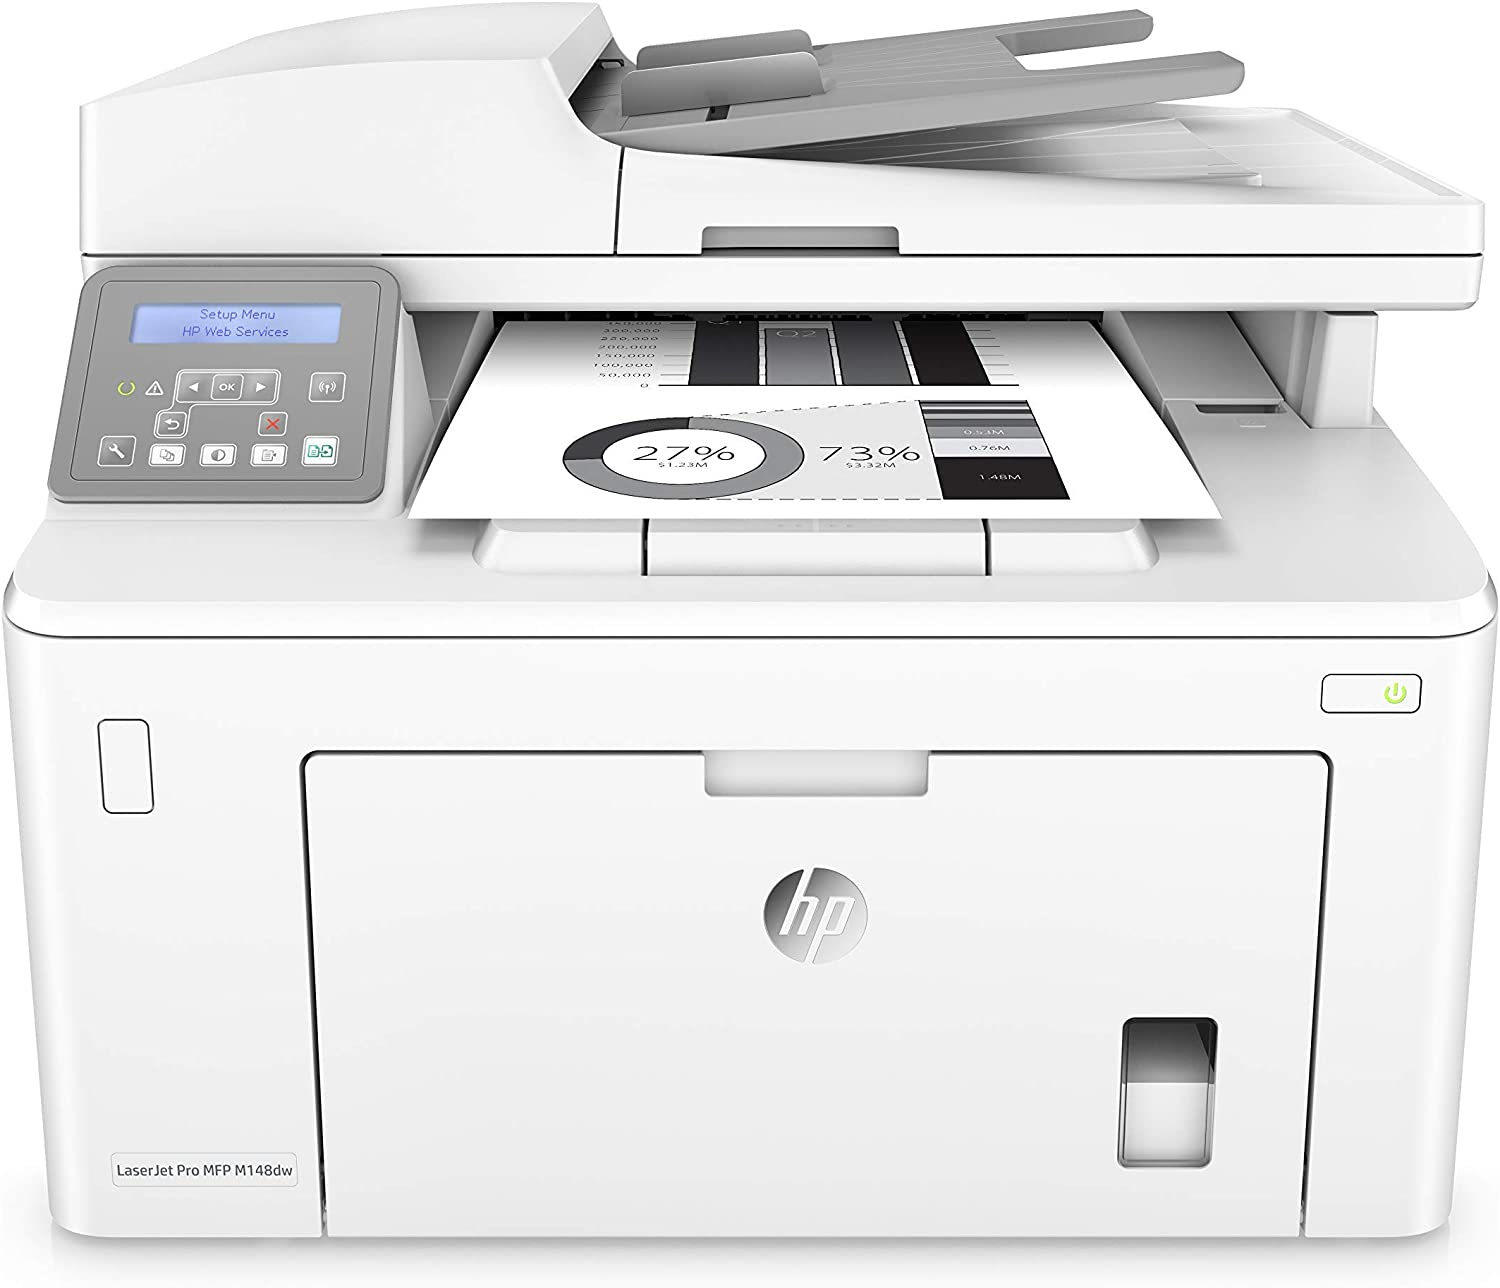 HP Laserjet Pro M148dw All-in-One Wireless Monochrome Laser Printer with Auto Two-Sided Printing, Mobile Printing & Built-in Ethernet (4PA41A) (Renewed)